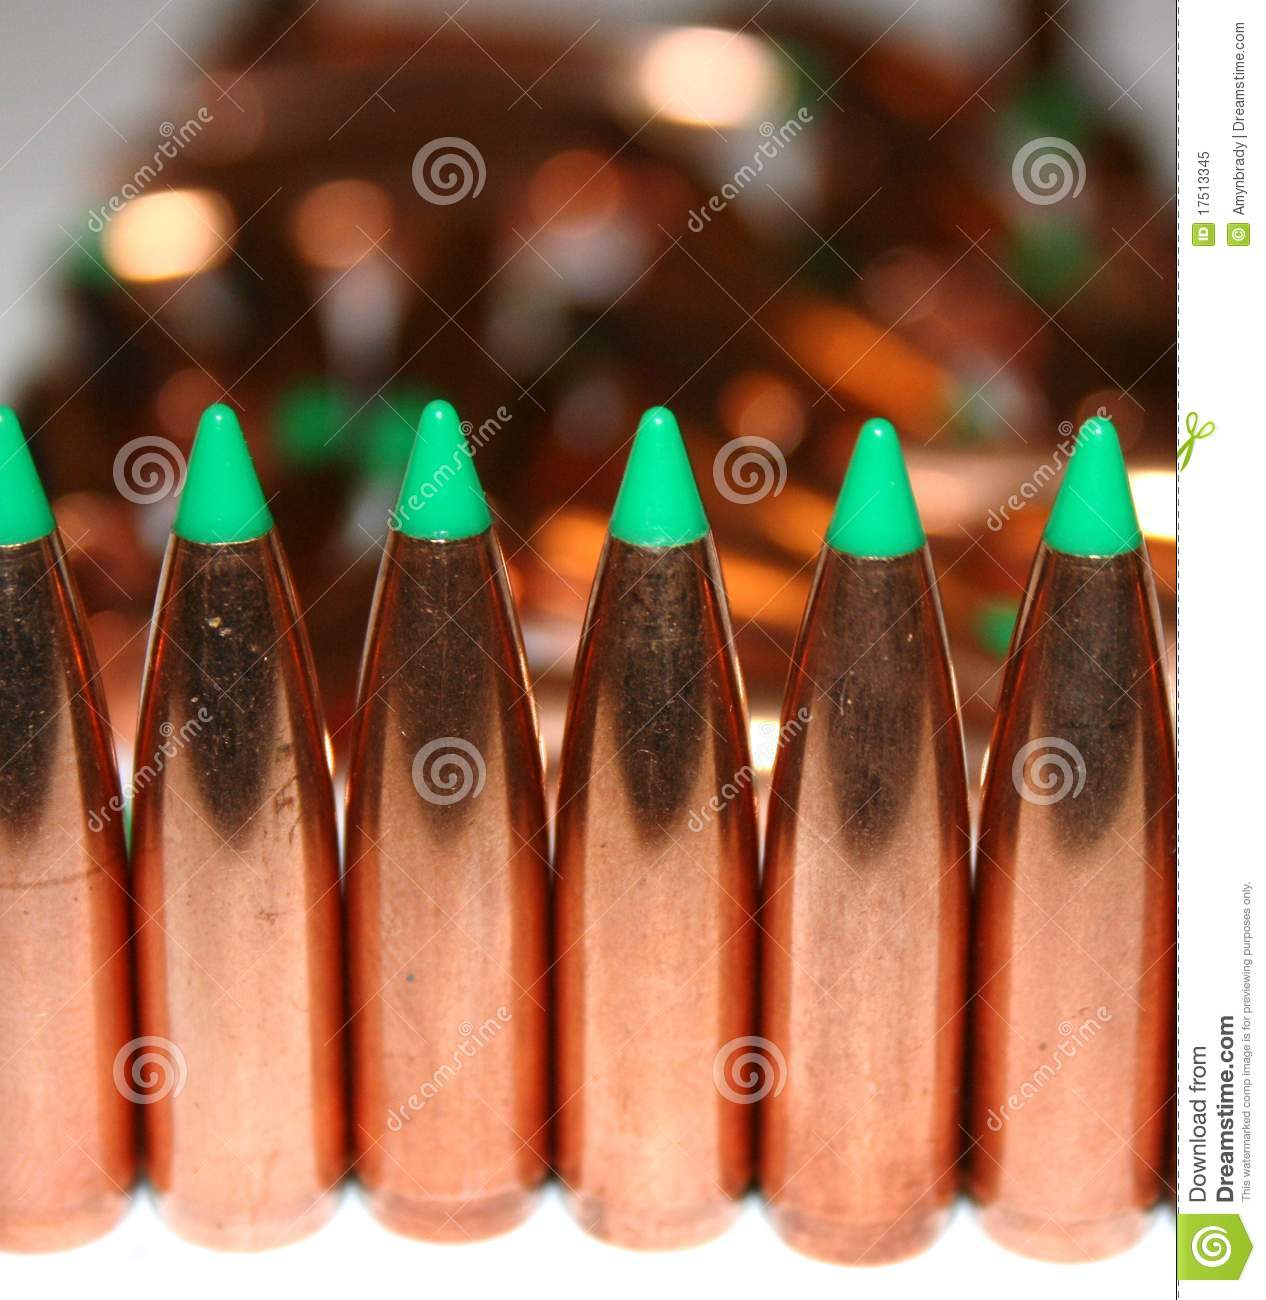 Bullets in a row stock image  Image of reload, powder - 17513345